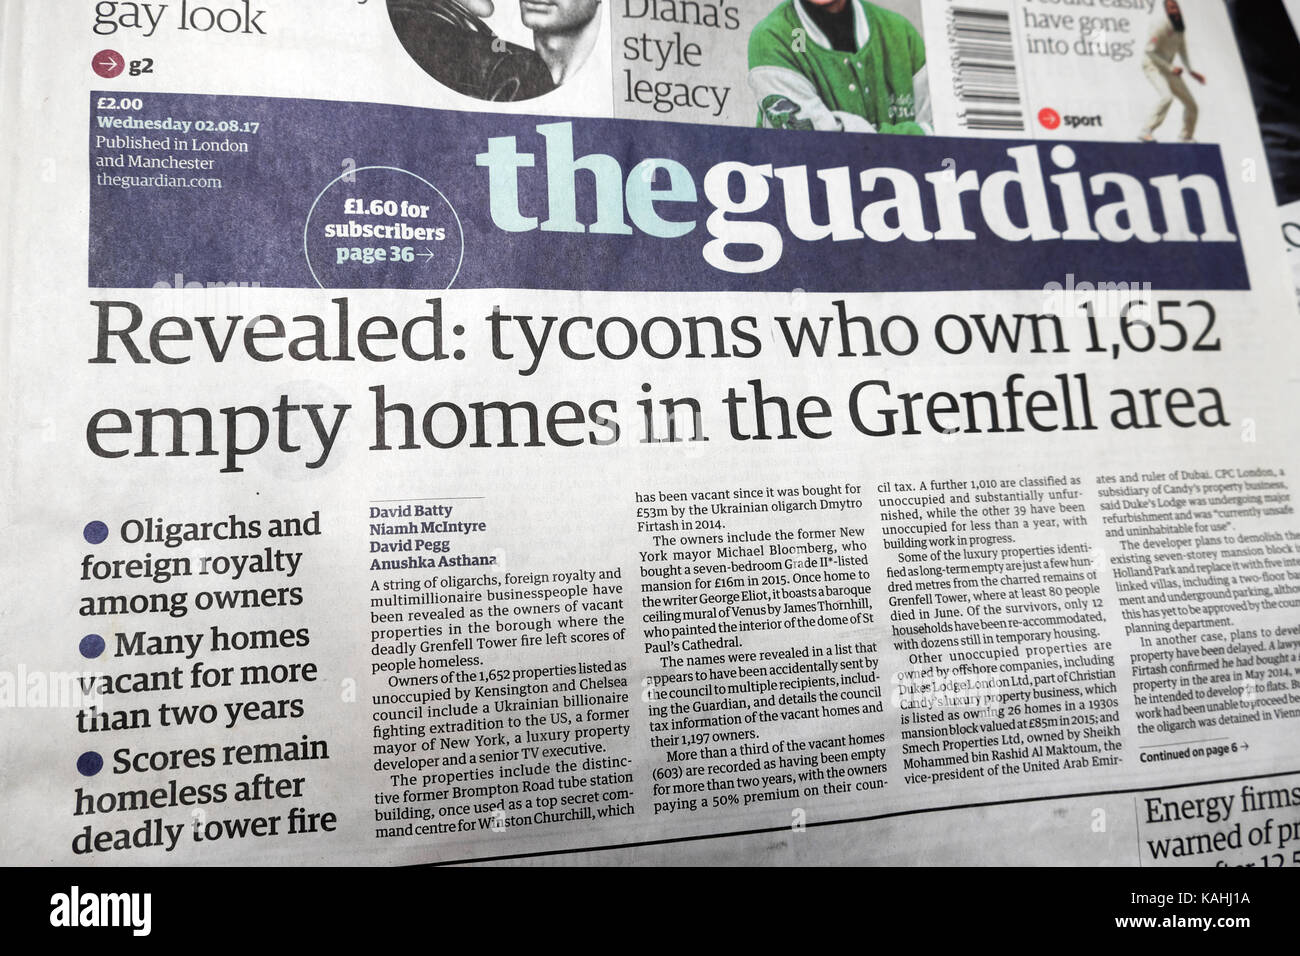 'Revealed: tycoons who own 1,652 empty homes in the Grenfell area' Guardian newspaper headline 02,08.2017 - Stock Image